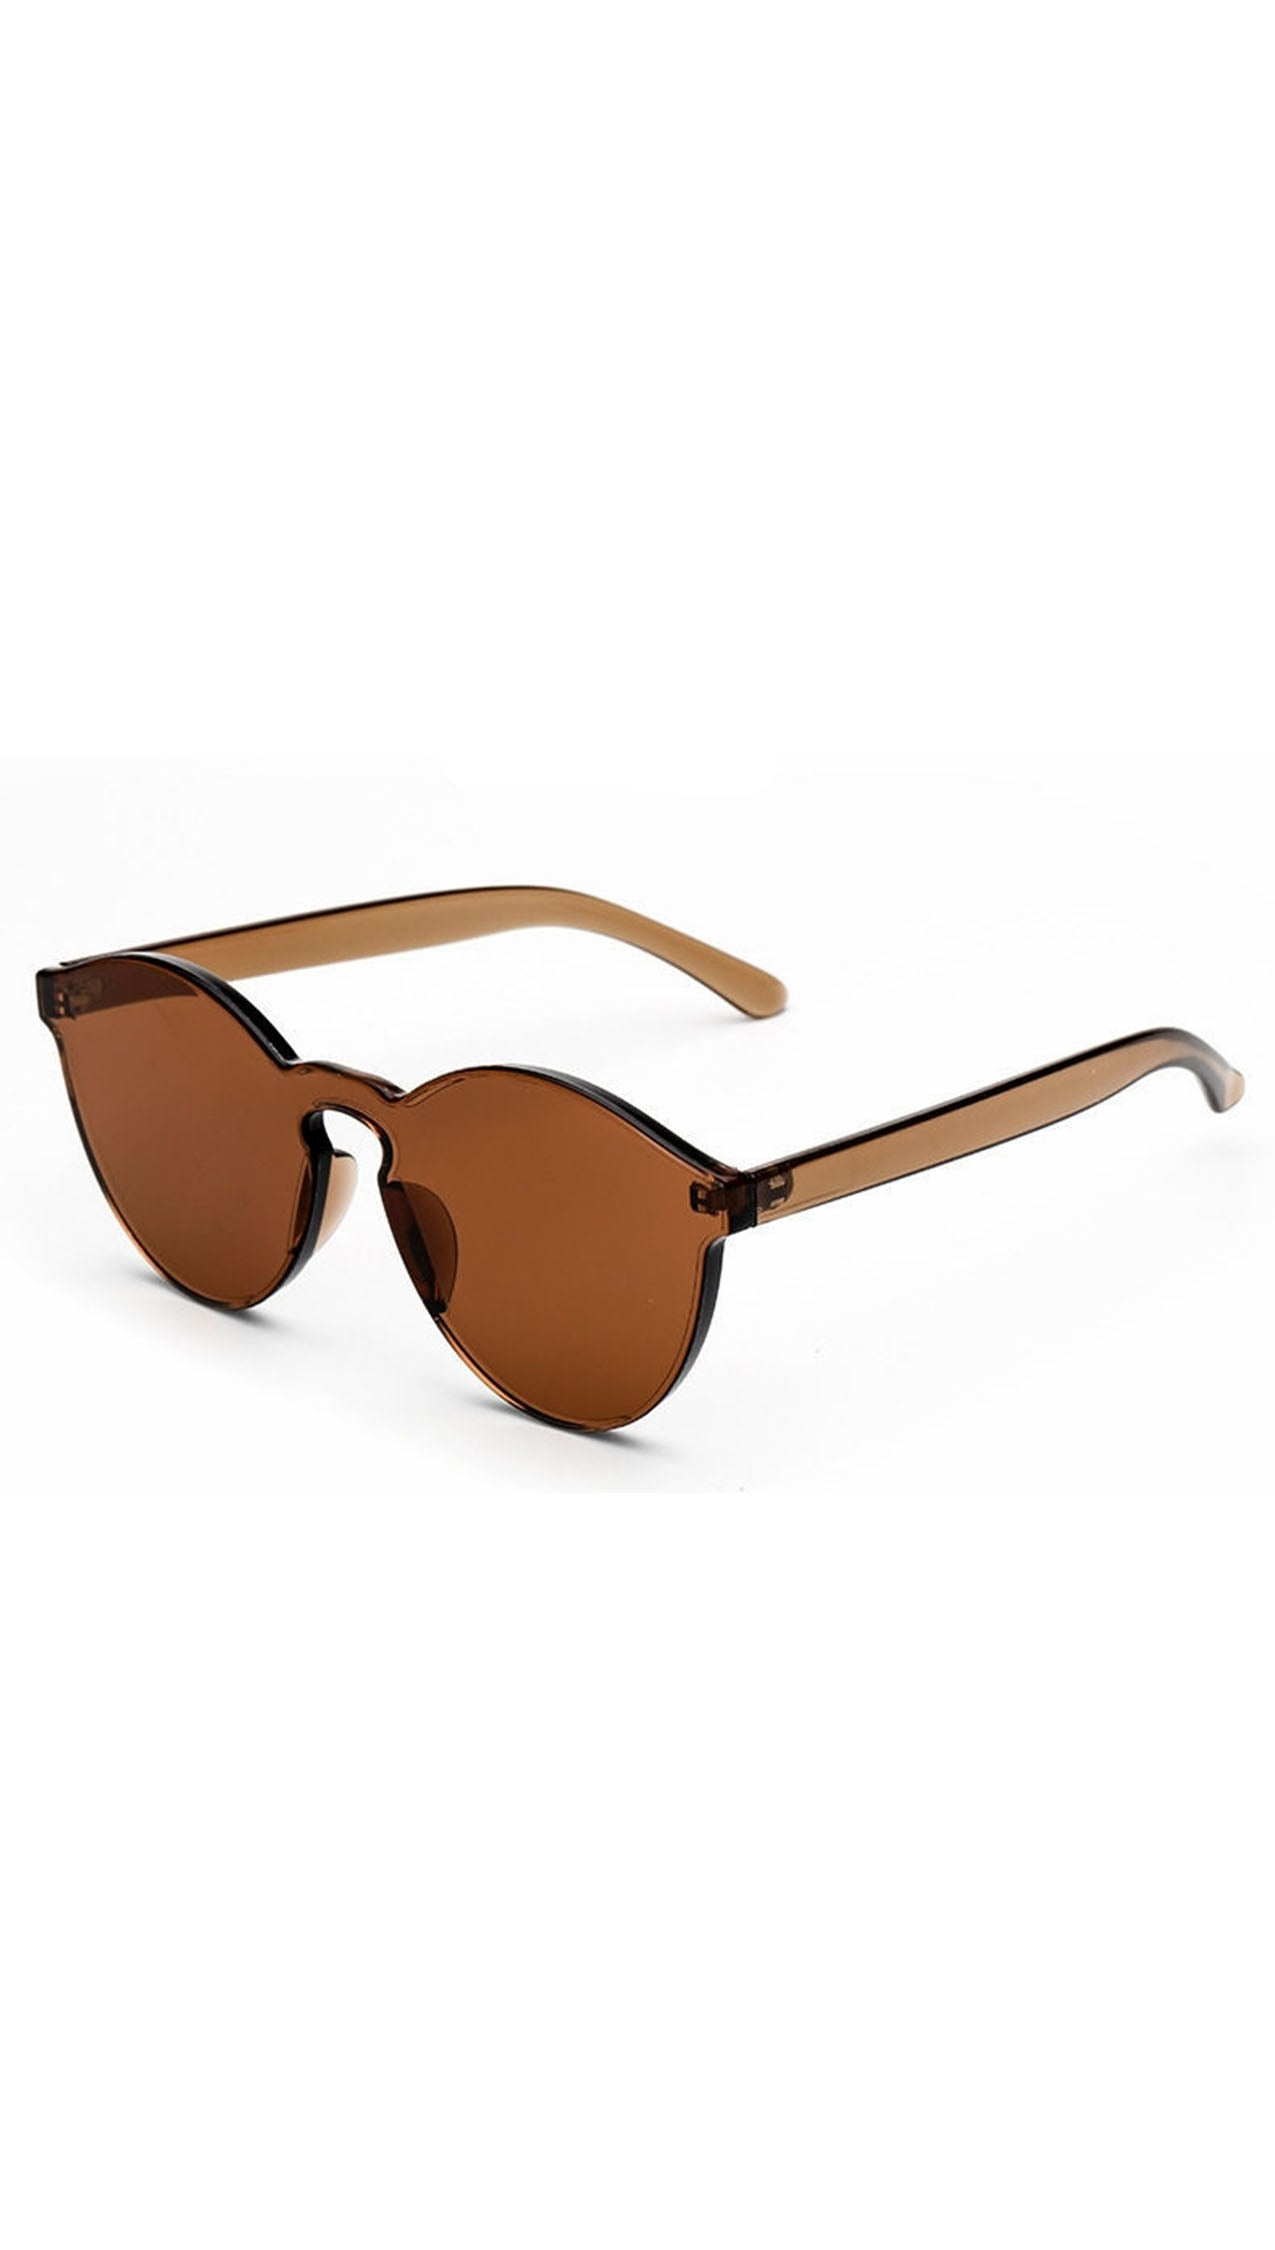 Brixy Coffee Brown Shield Sunglass Fashion Eye Wear Shades SHOPAA